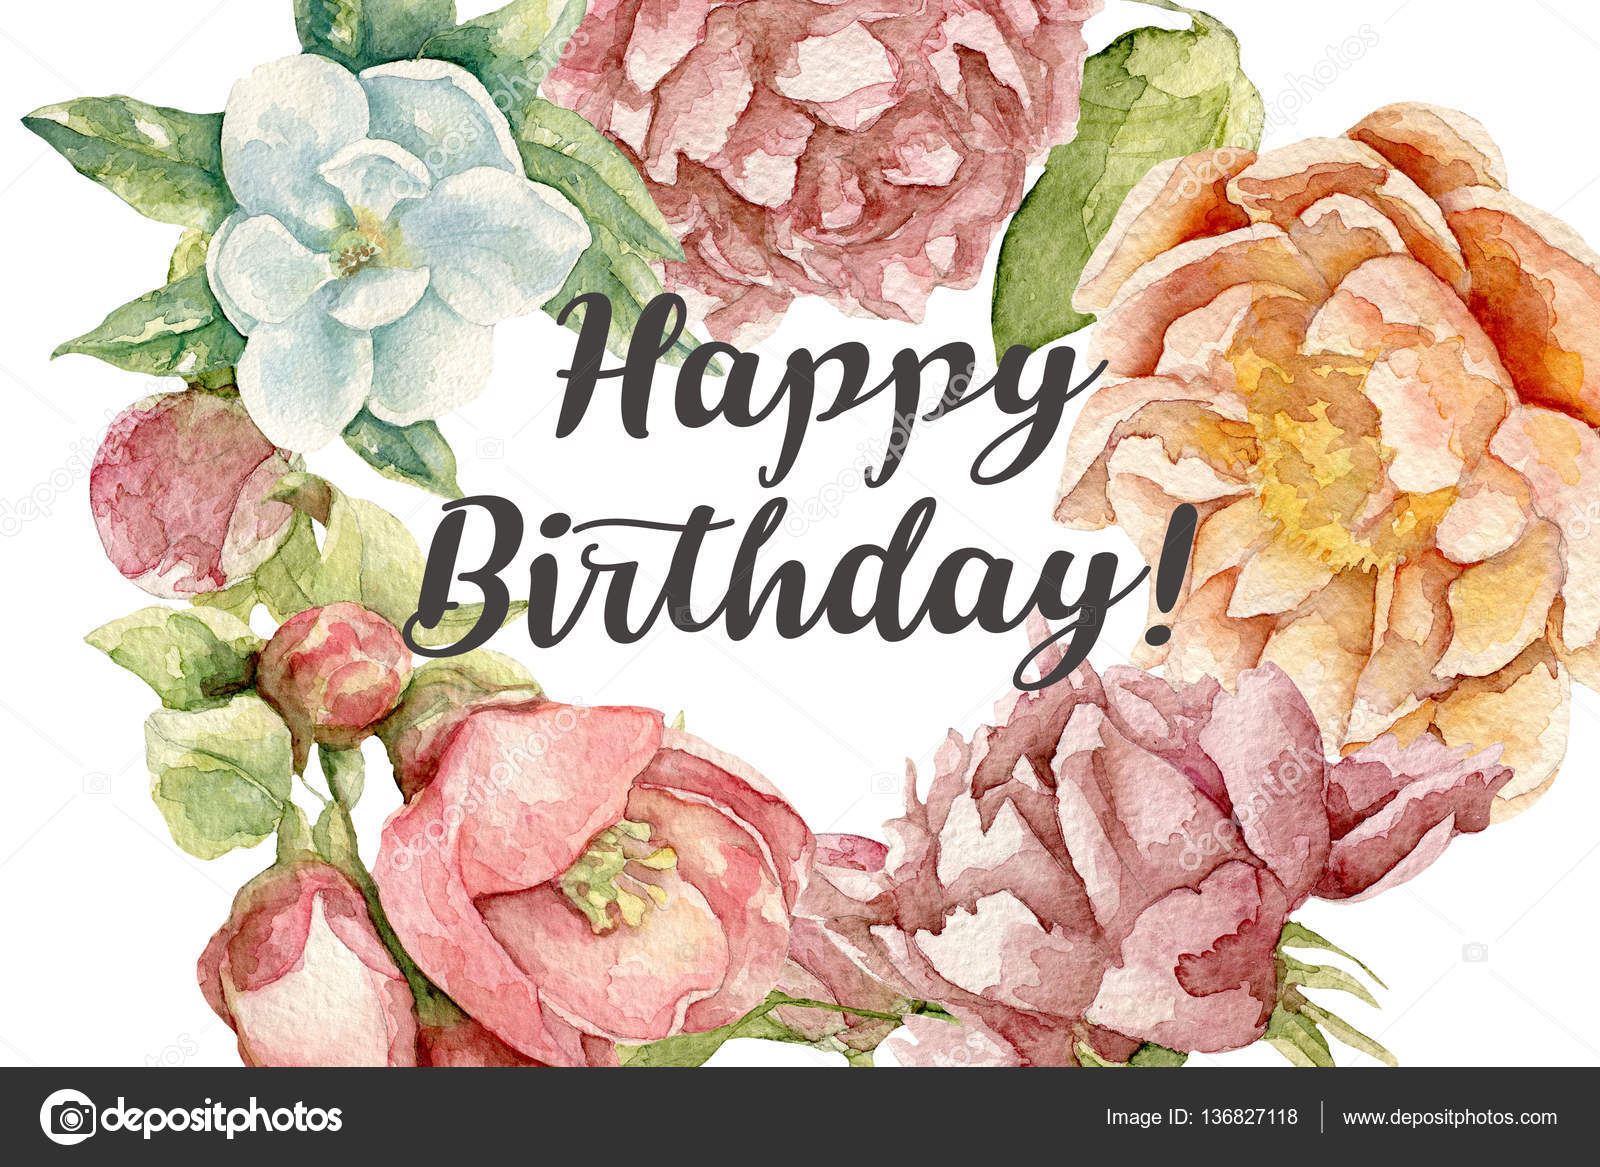 Happy birthday card with watercolor flowers stock photo yunaco happy birthday card with watercolor flowers stock photo izmirmasajfo